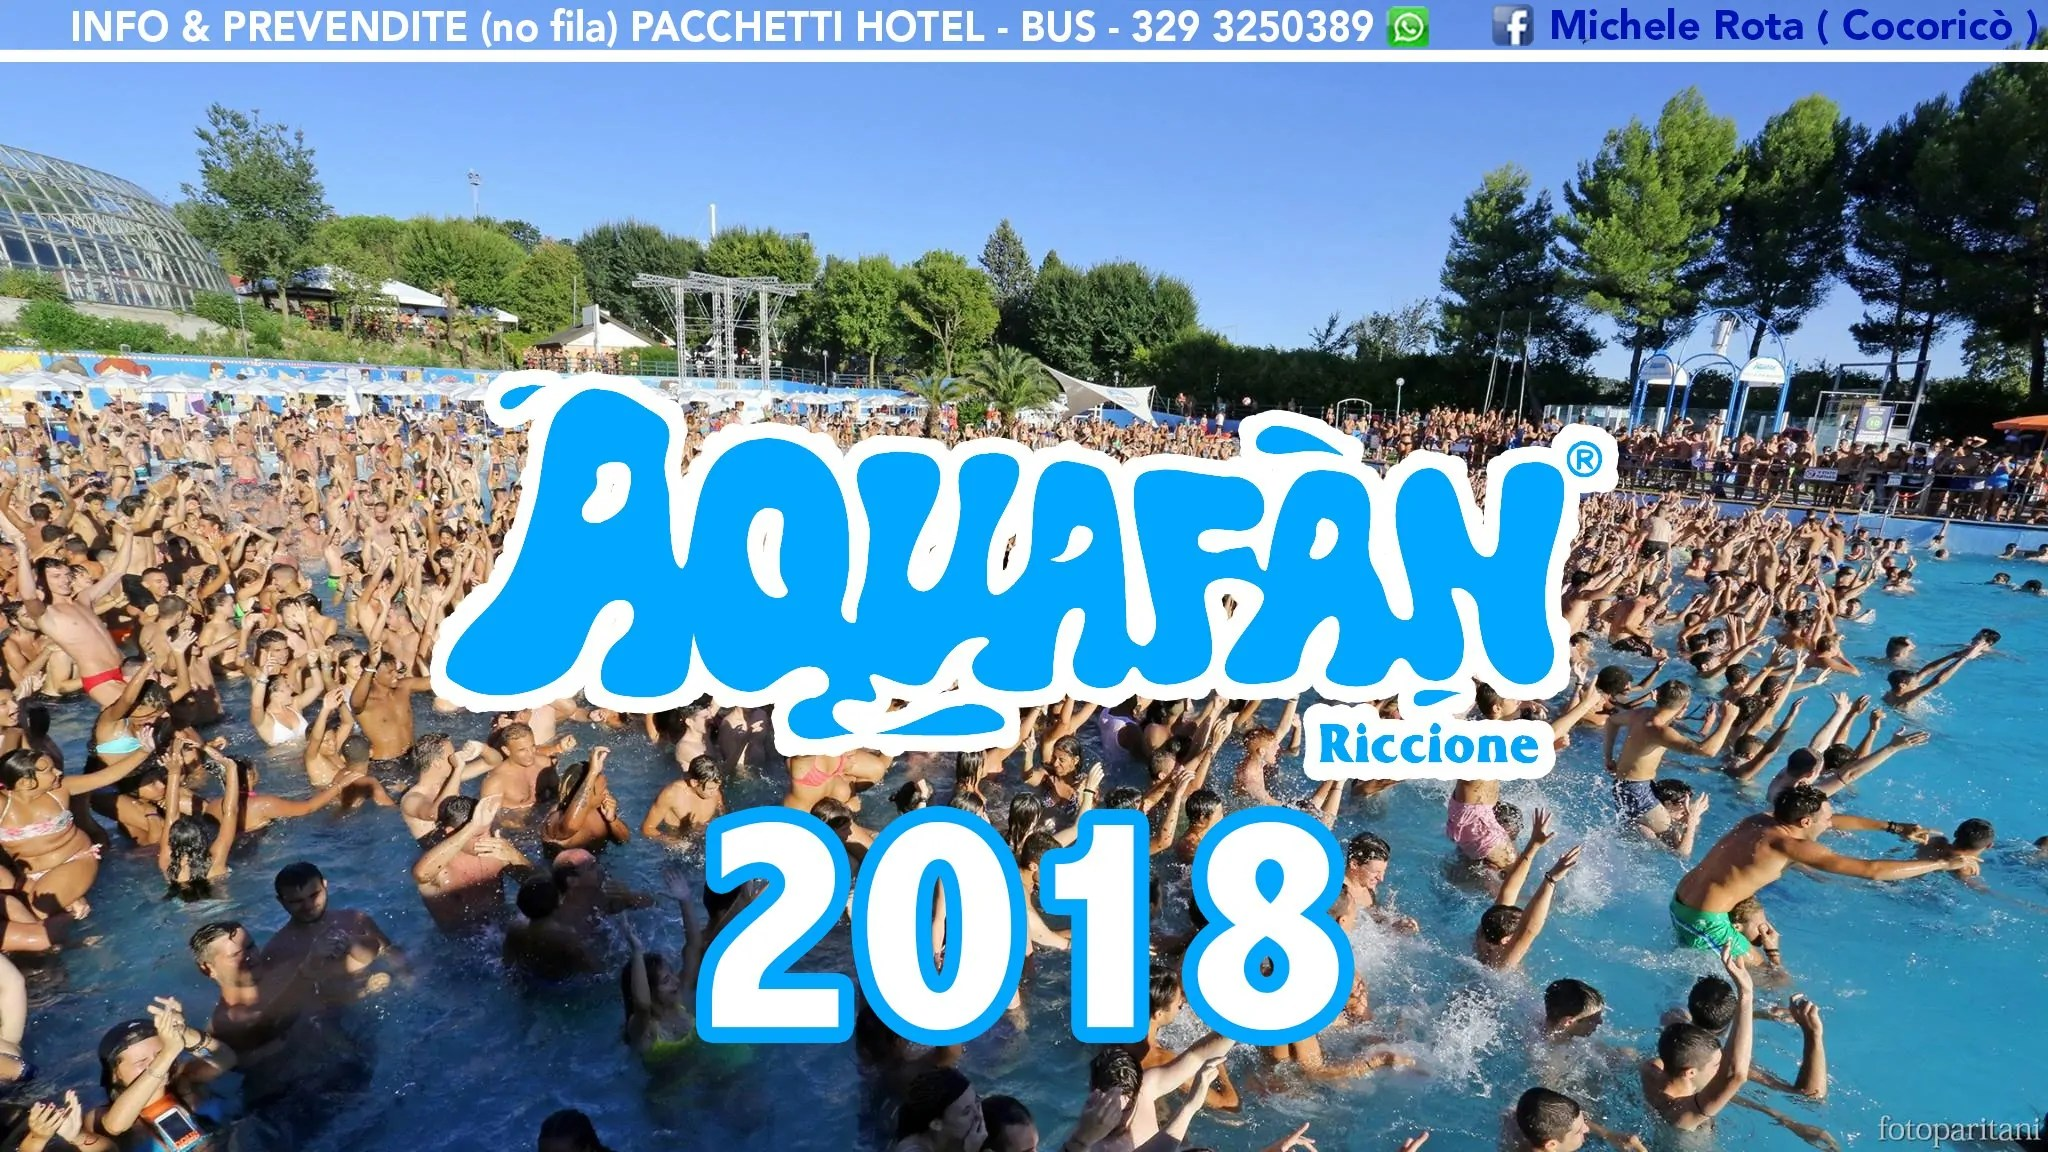 aquafan schiuma party 2018 night & day